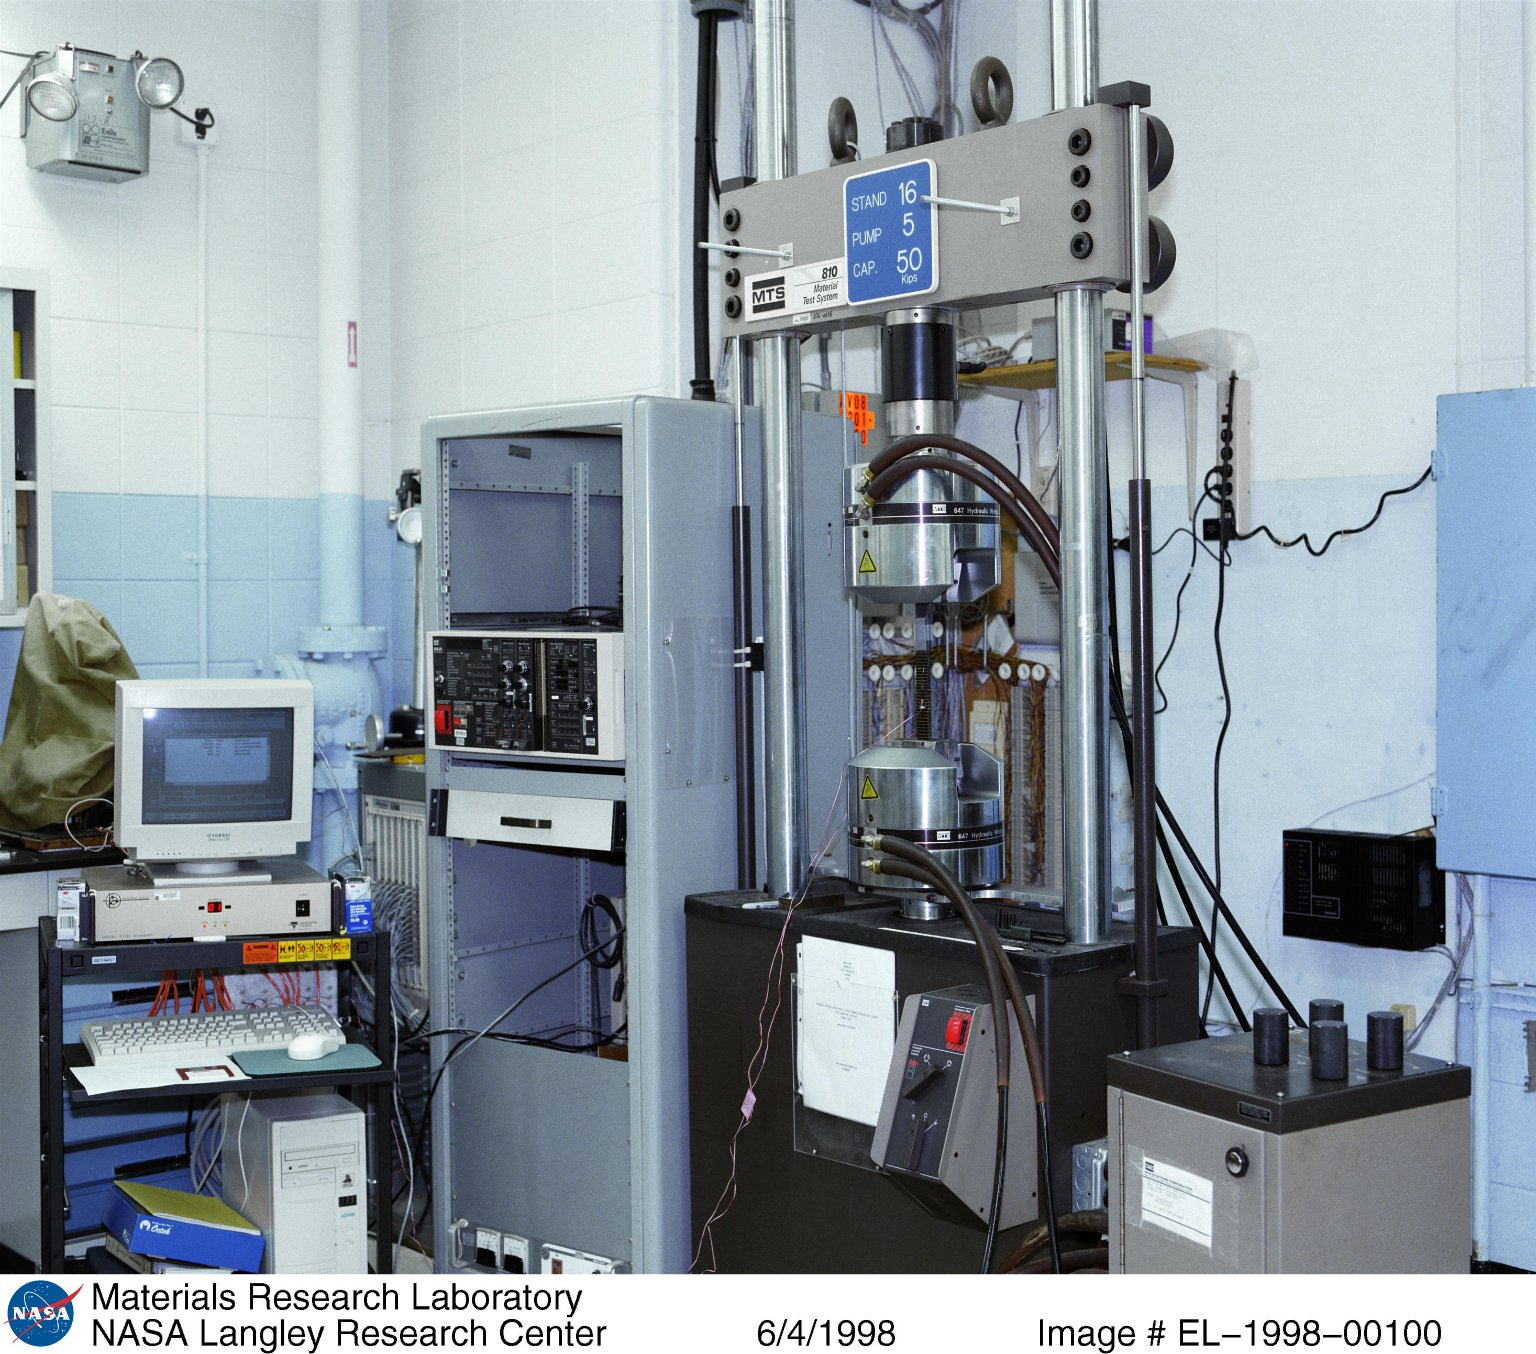 Materials Research Laboratory